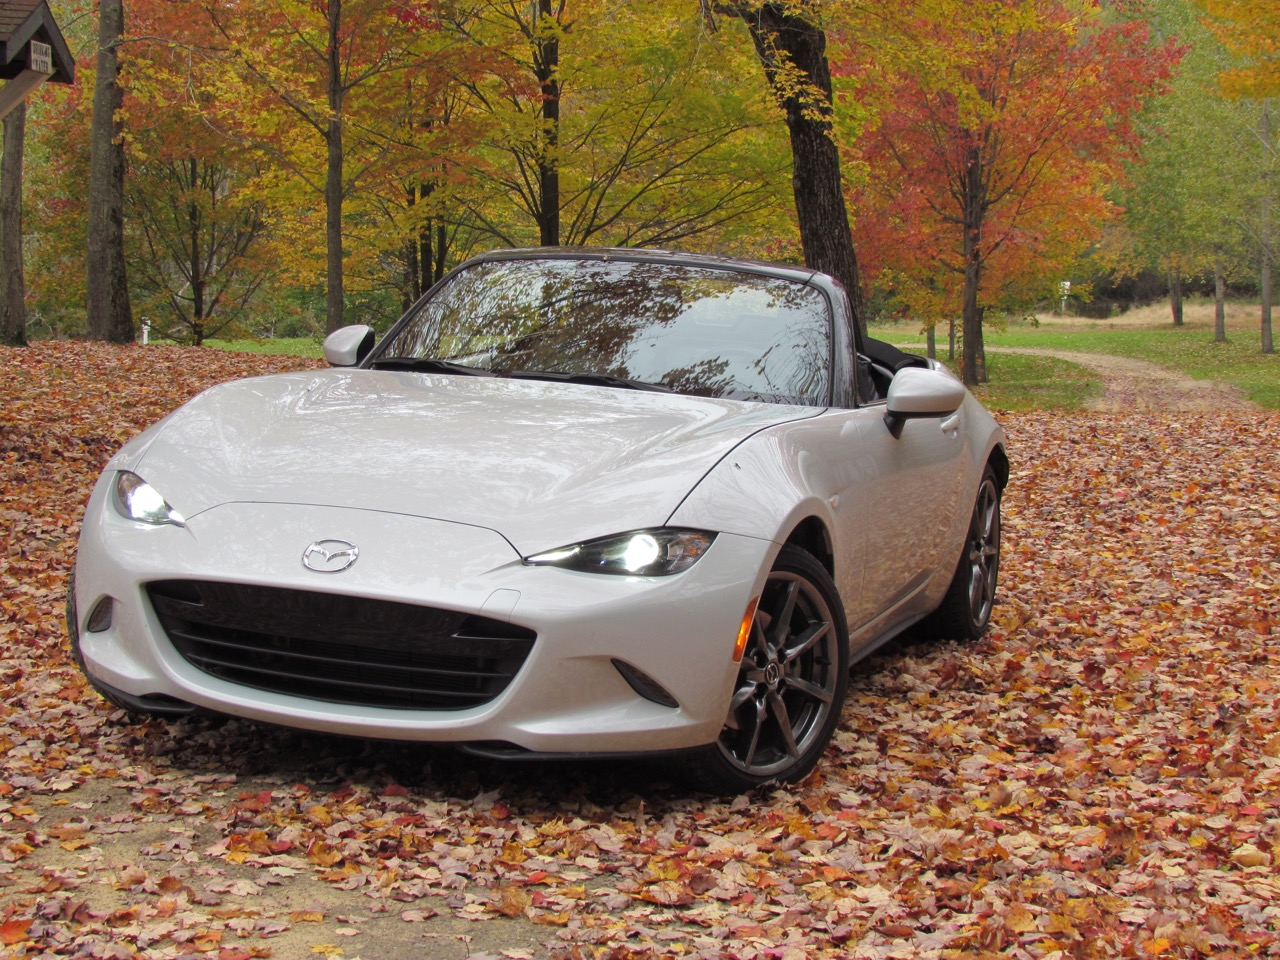 2016 Mazda MX-5 Miata has seat heaters to keep you warm with the top down | Larry Edsall photos